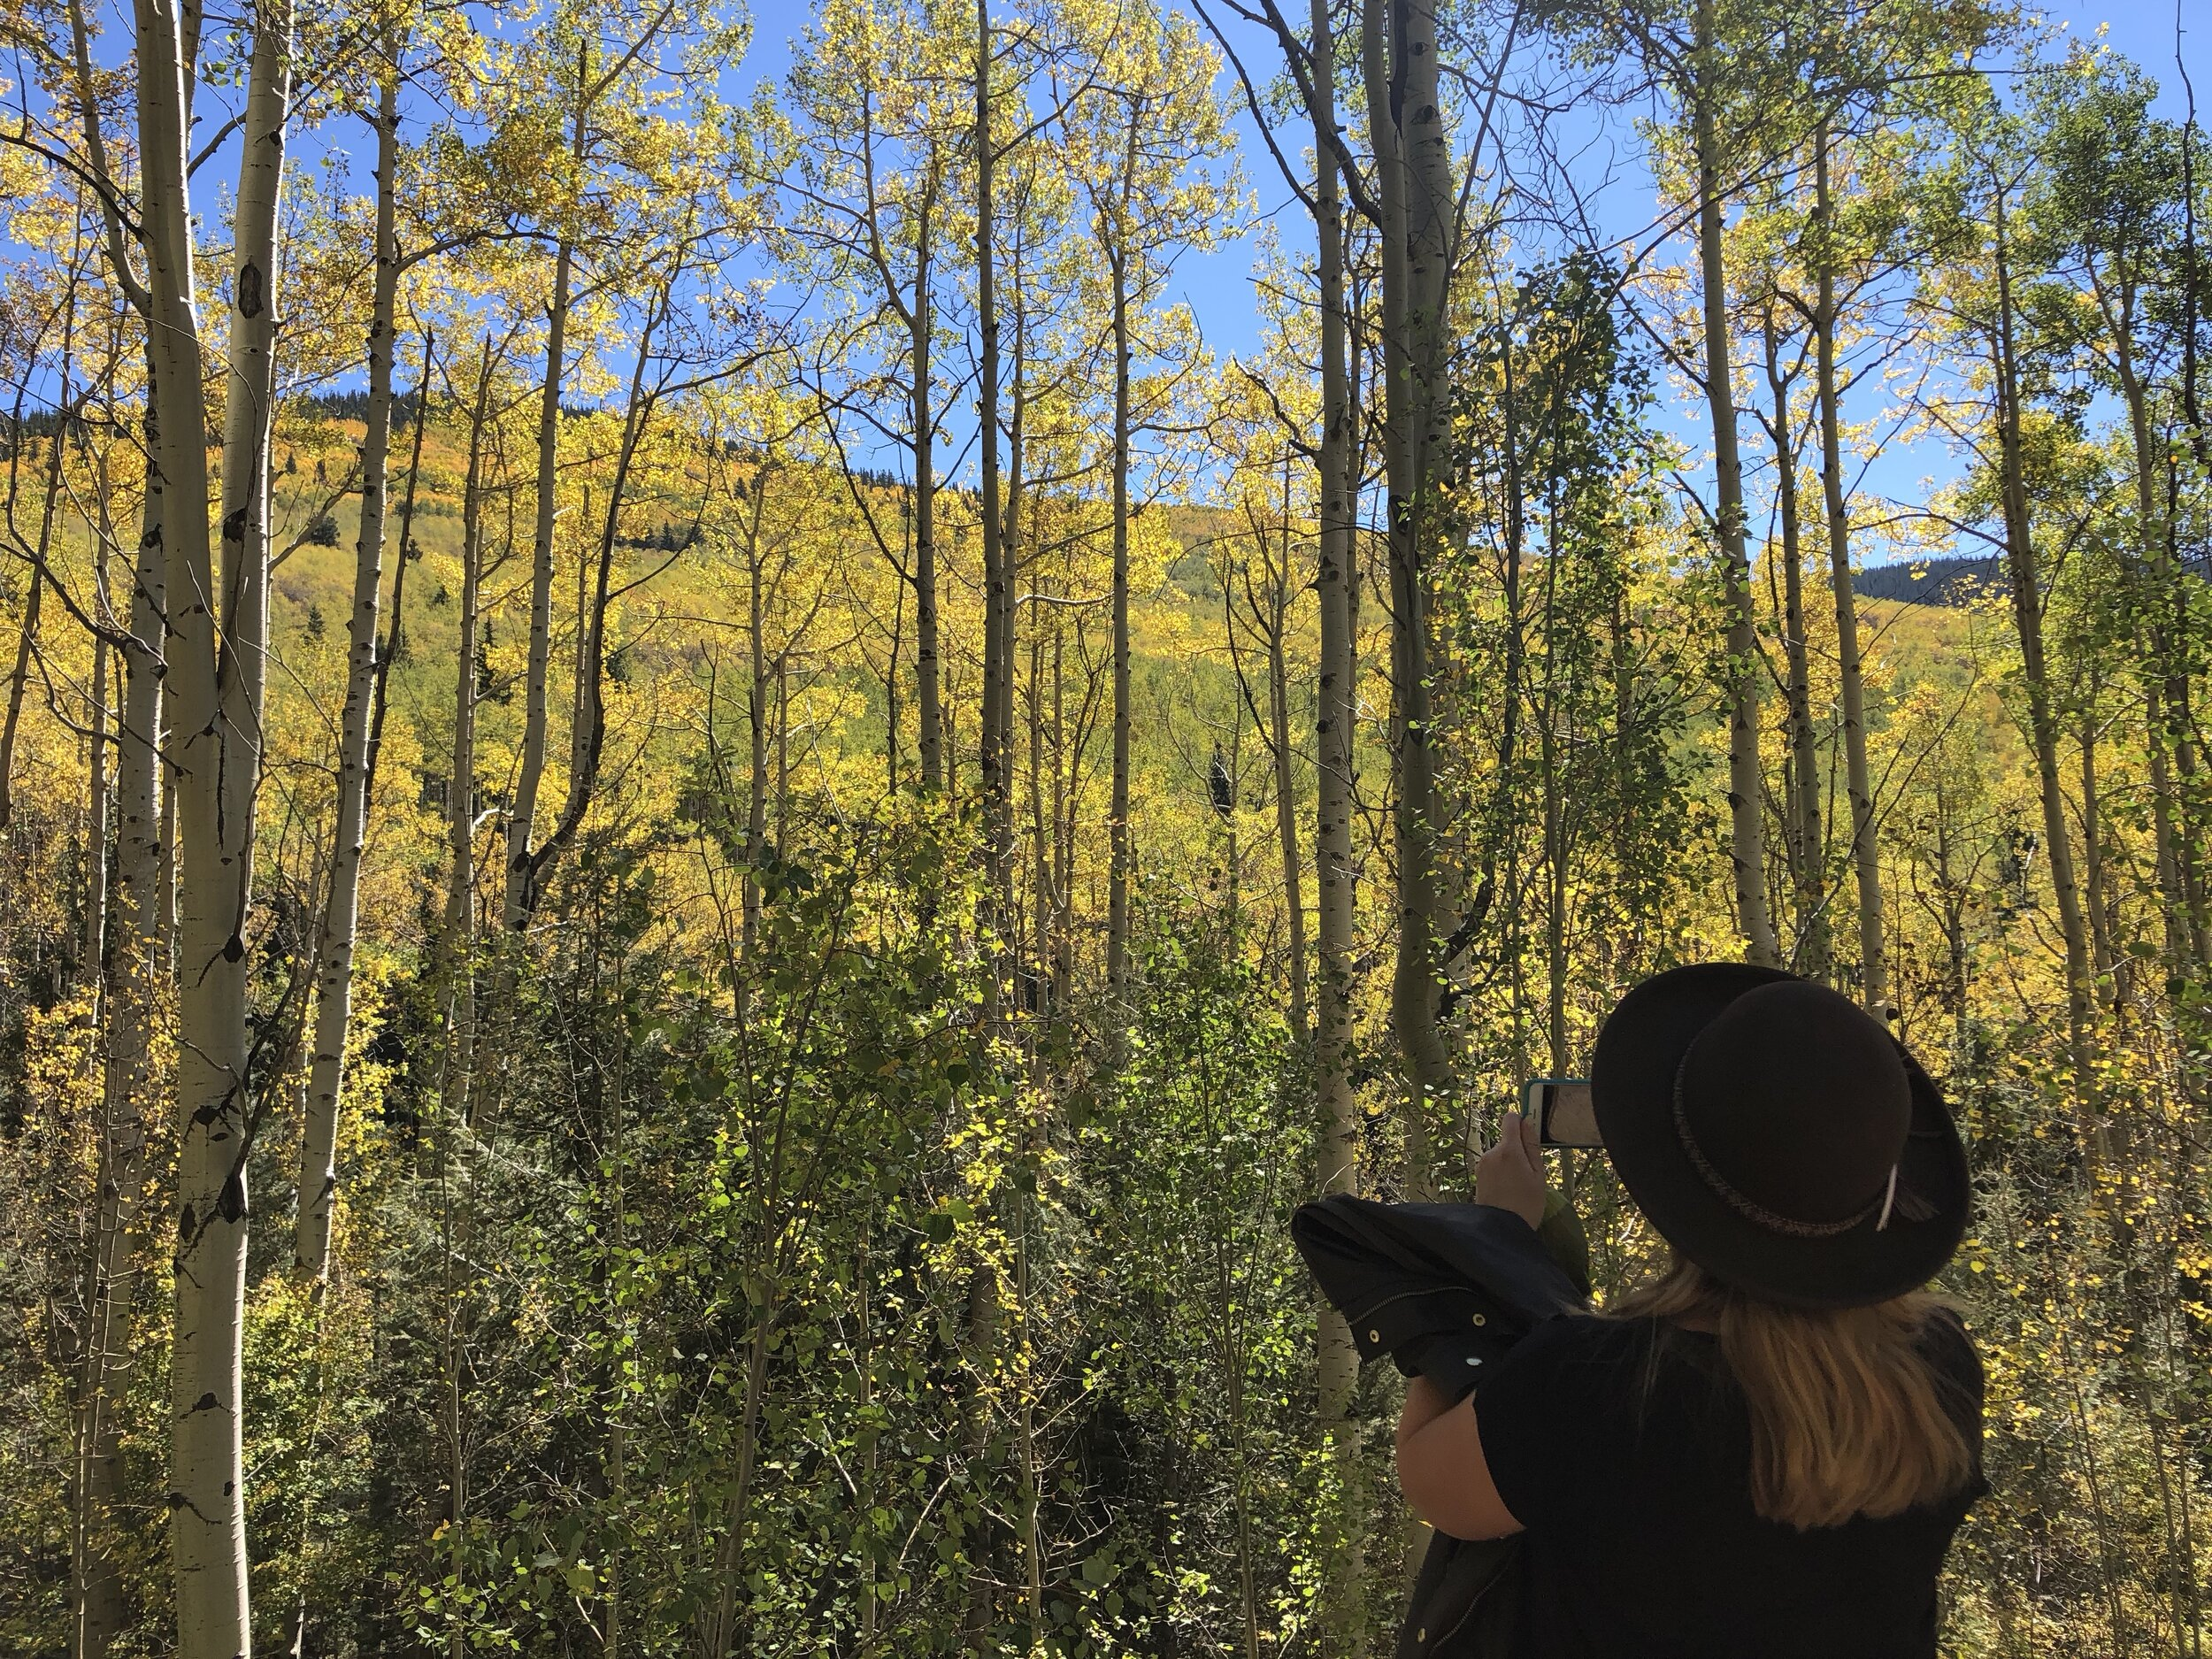 Leaf peeping on  Aspen Vista Trail  is one of our favorite fall activities